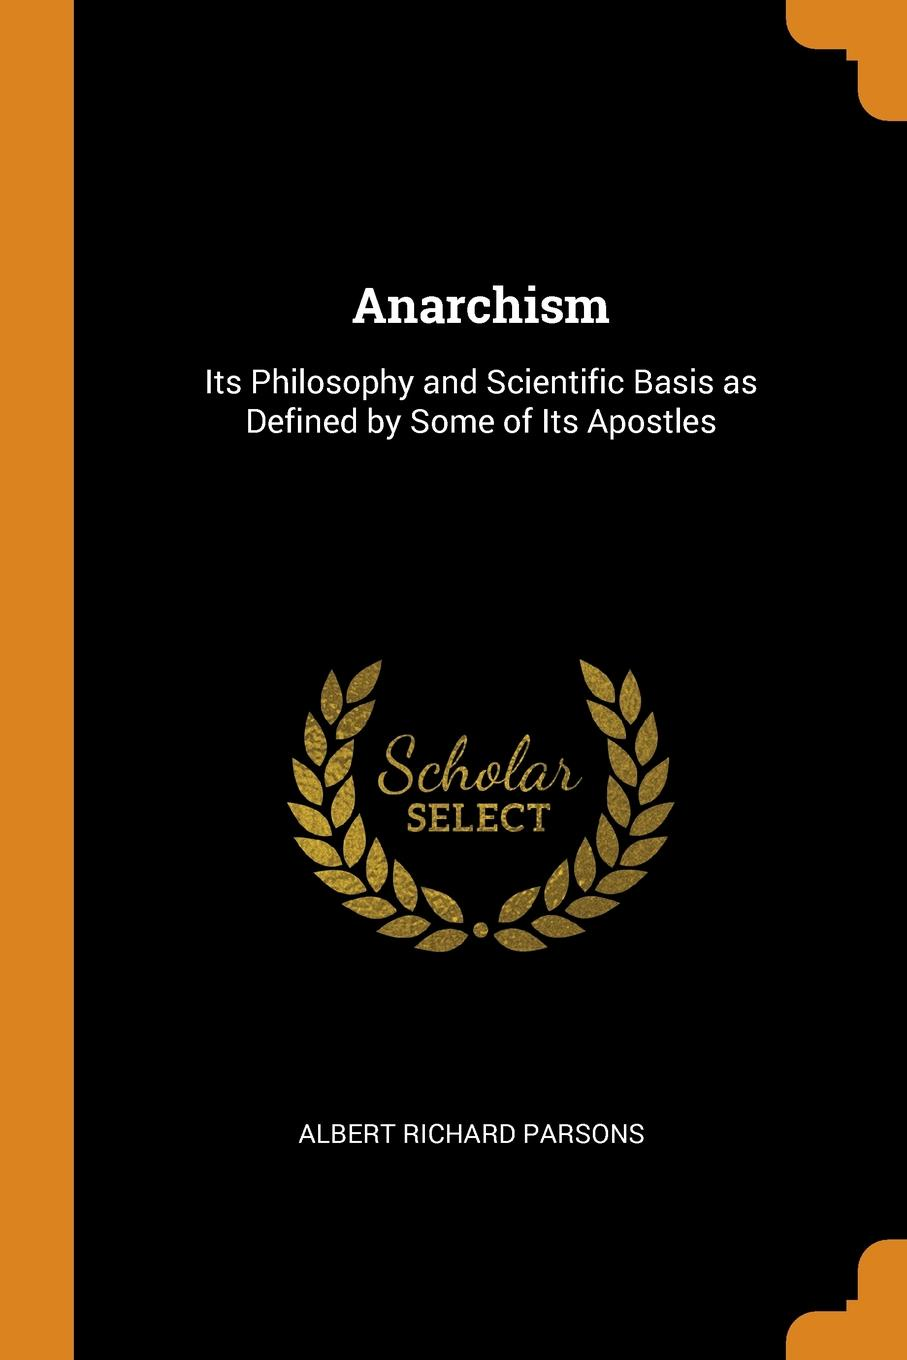 Anarchism. Its Philosophy and Scientific Basis as Defined by Some of Its Apostles